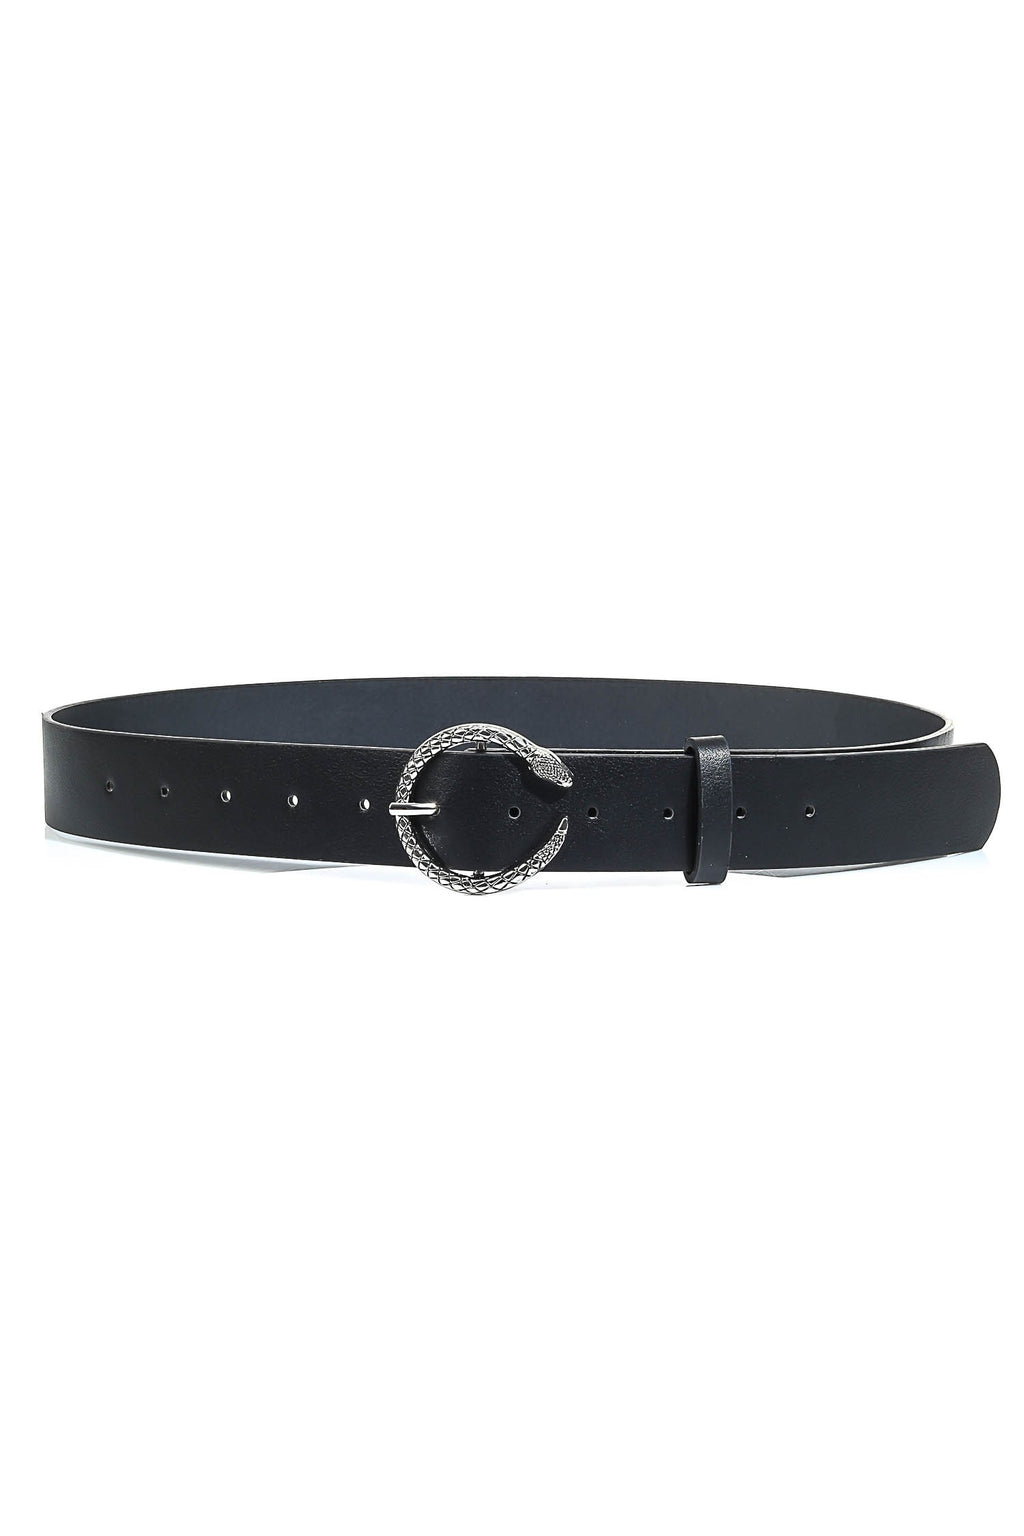 Snake Buckle Belt Black